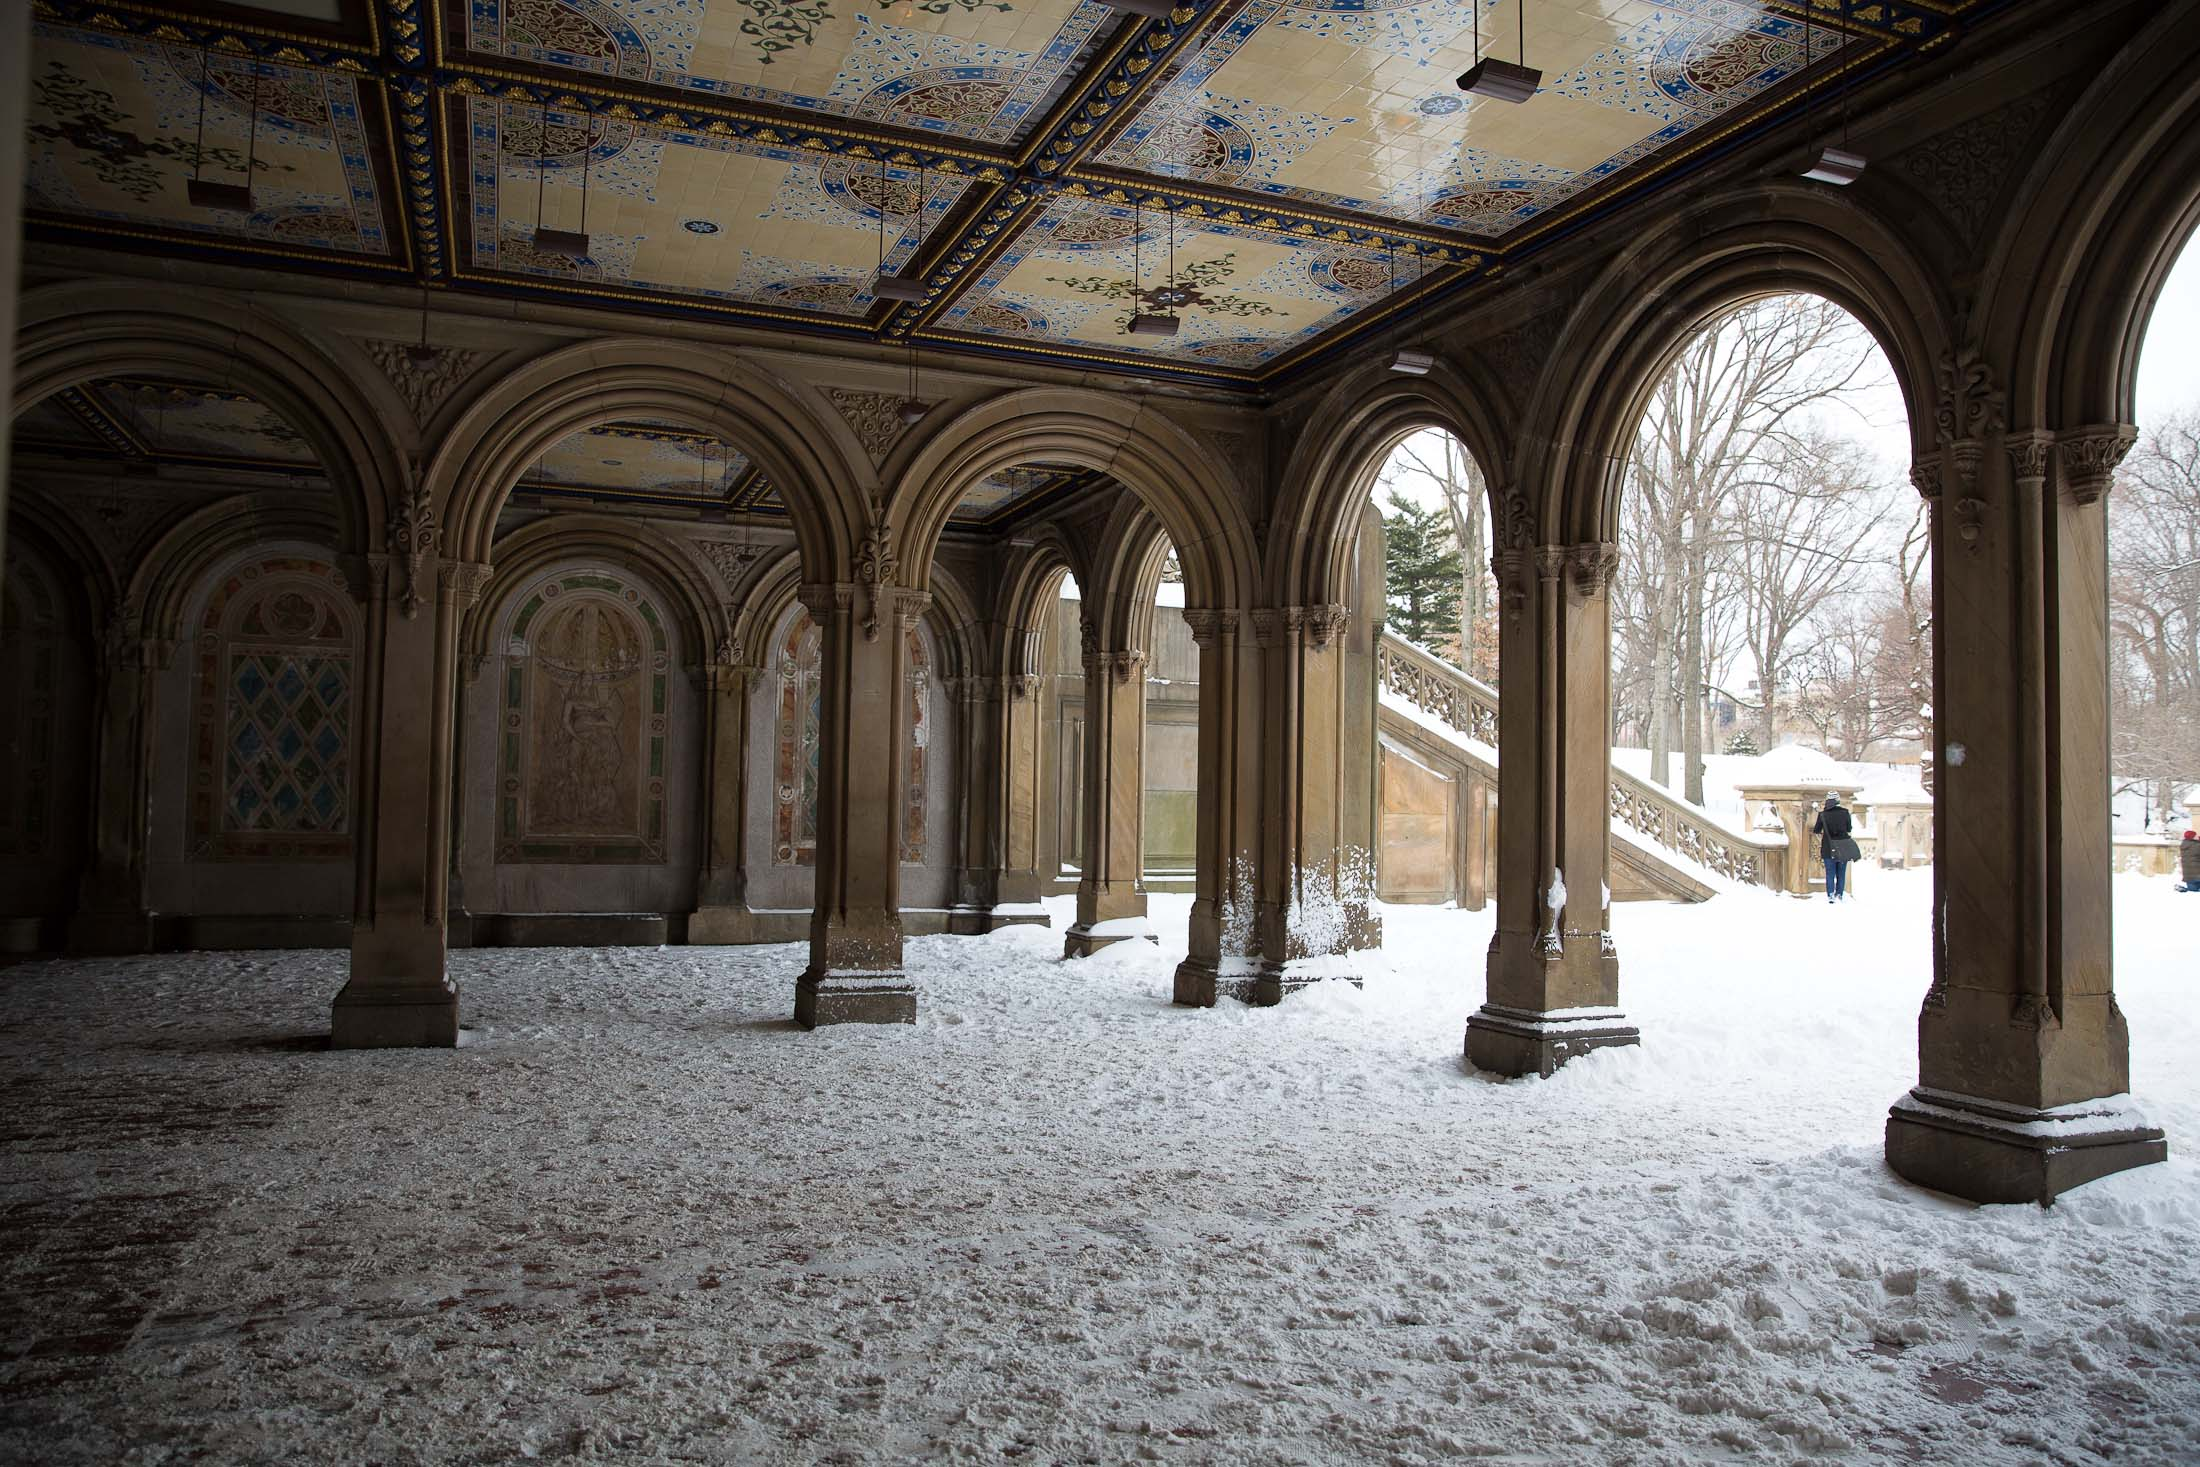 central park snow snowstorm blizzard juno bethesda terrace bridge snowfall winter new york city nyc photo sher she goes shershegoes.com